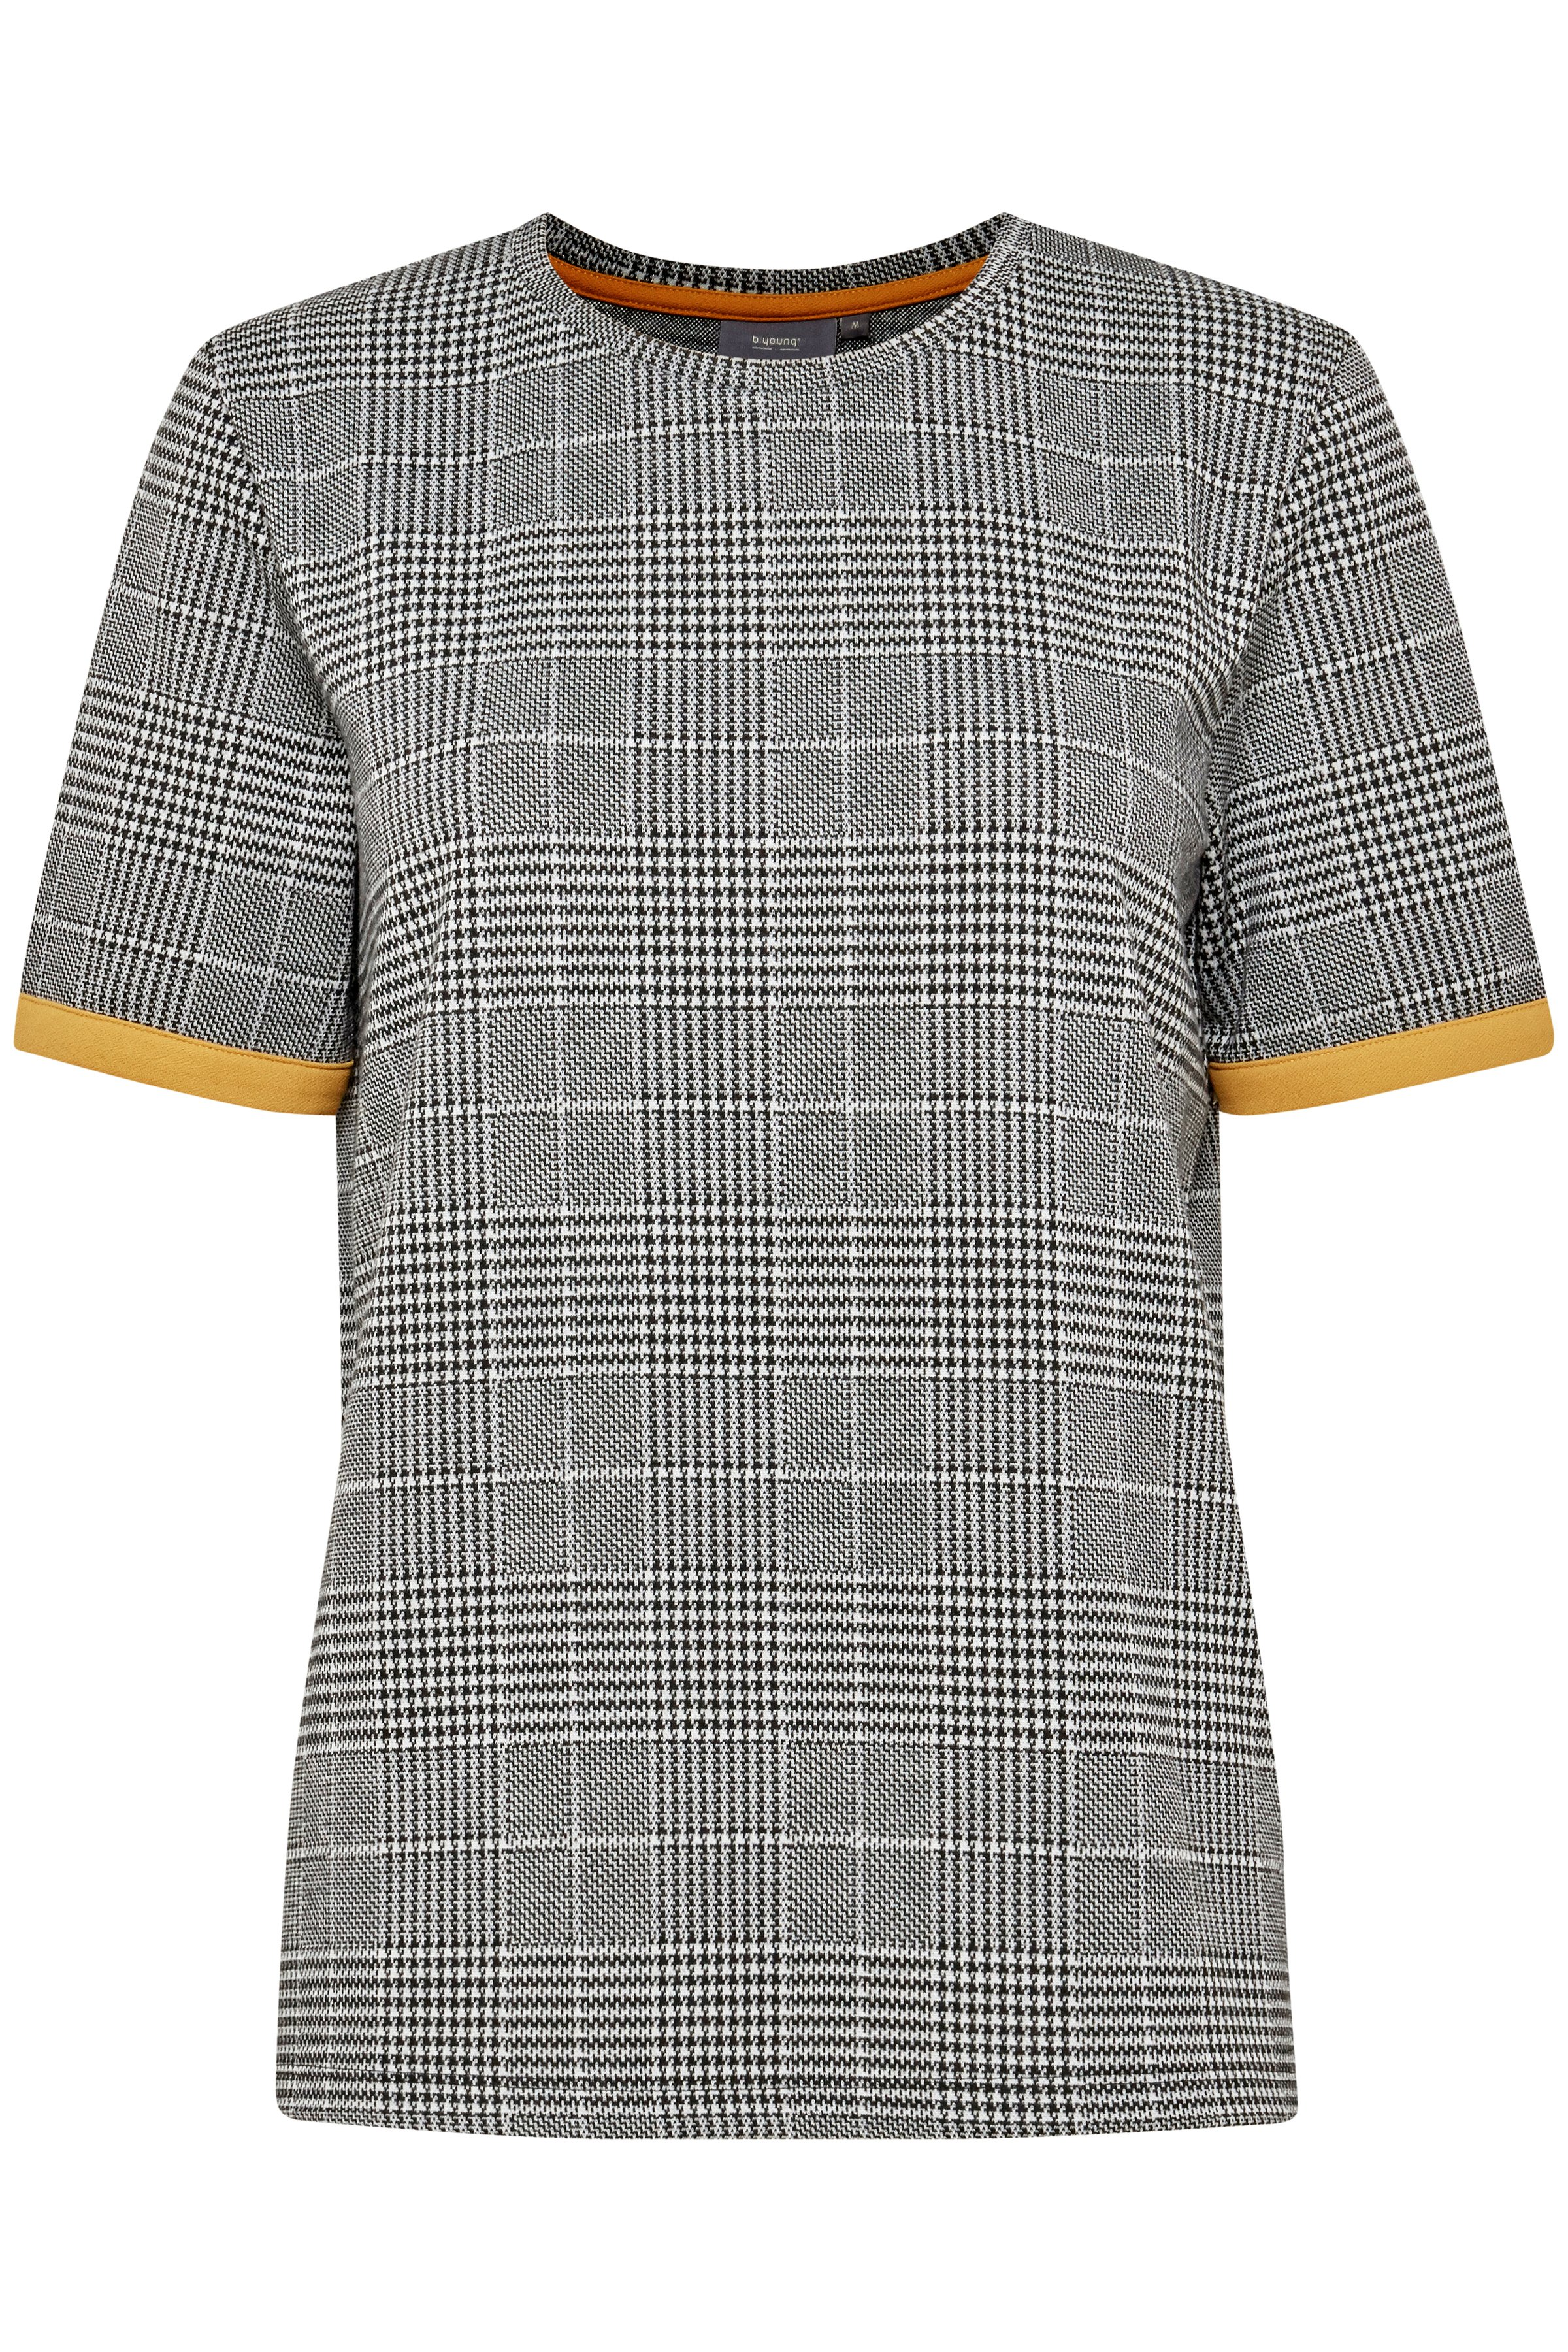 Check combi 1 T-shirt from b.young – Buy Check combi 1 T-shirt from size XS-XXL here